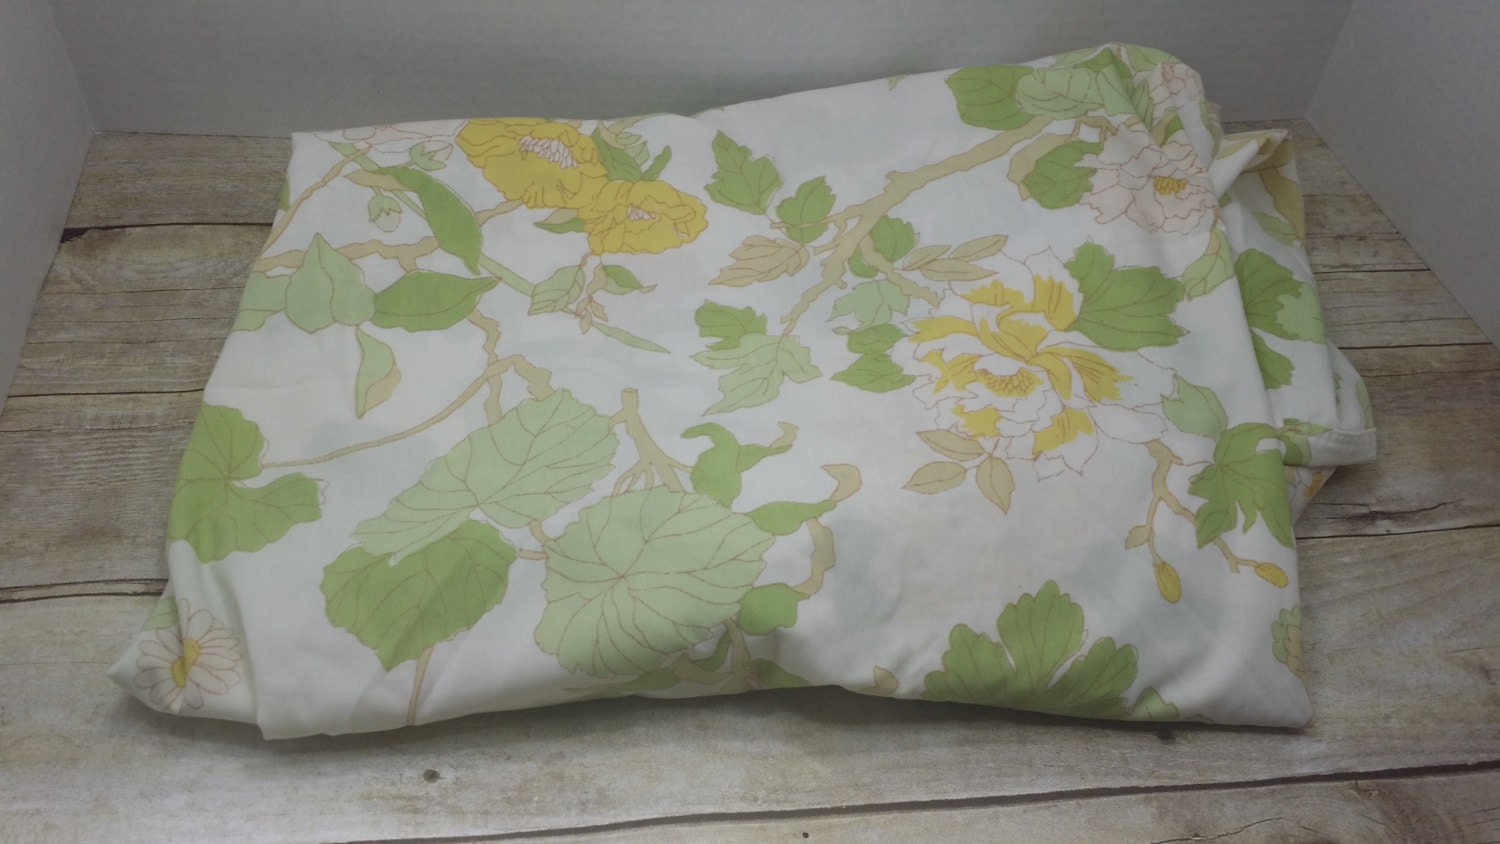 Literie double drap housse des ann es 1970 vintage literie for Drap housse traduction